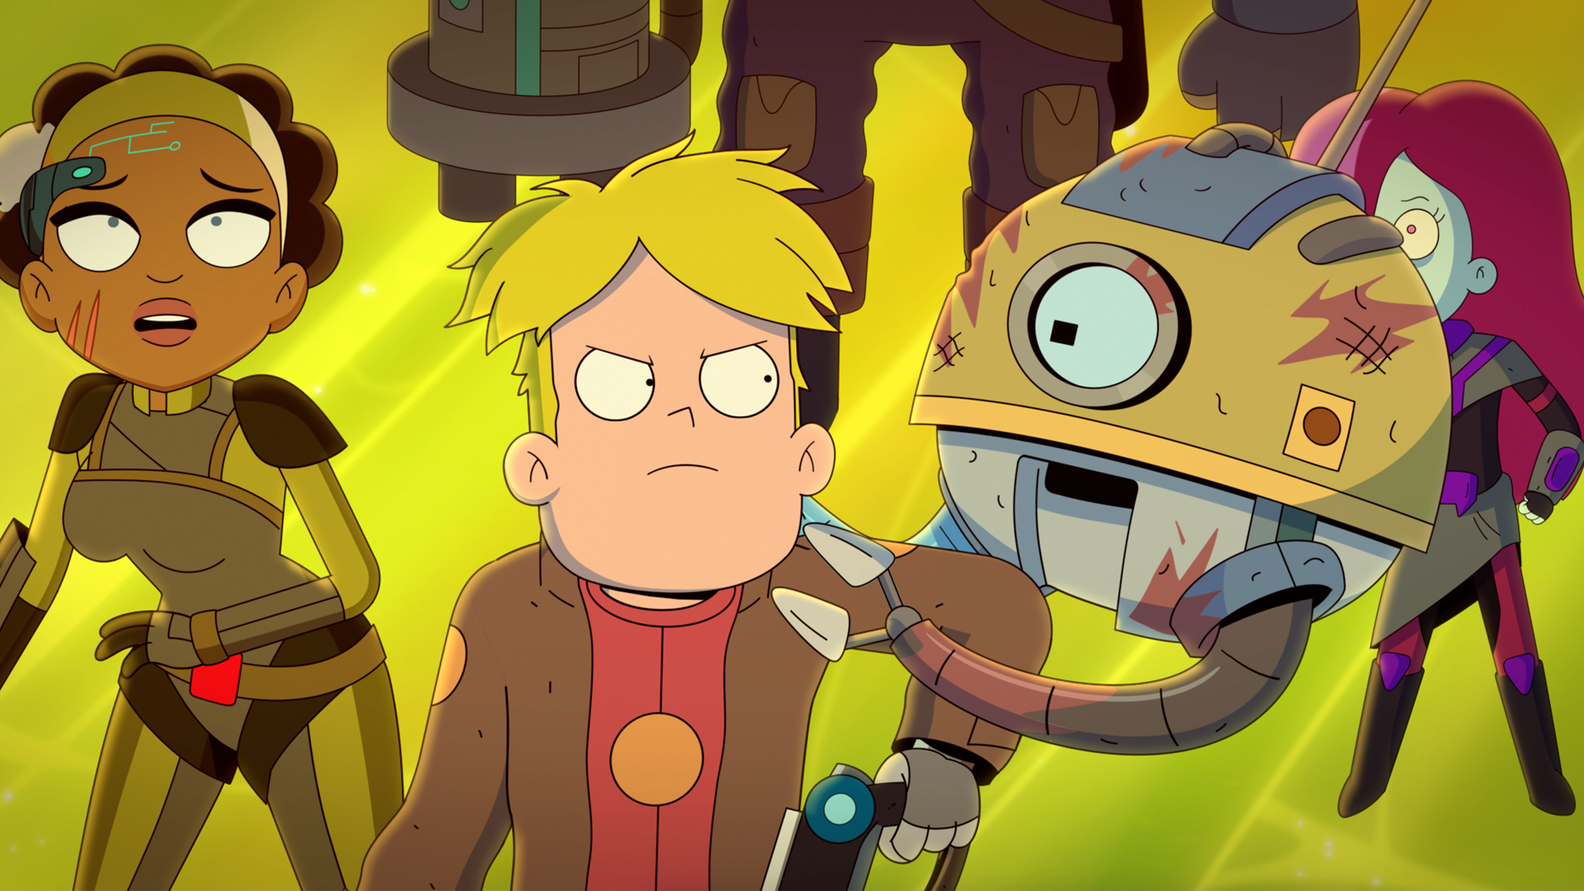 Final Space S2 Image 2